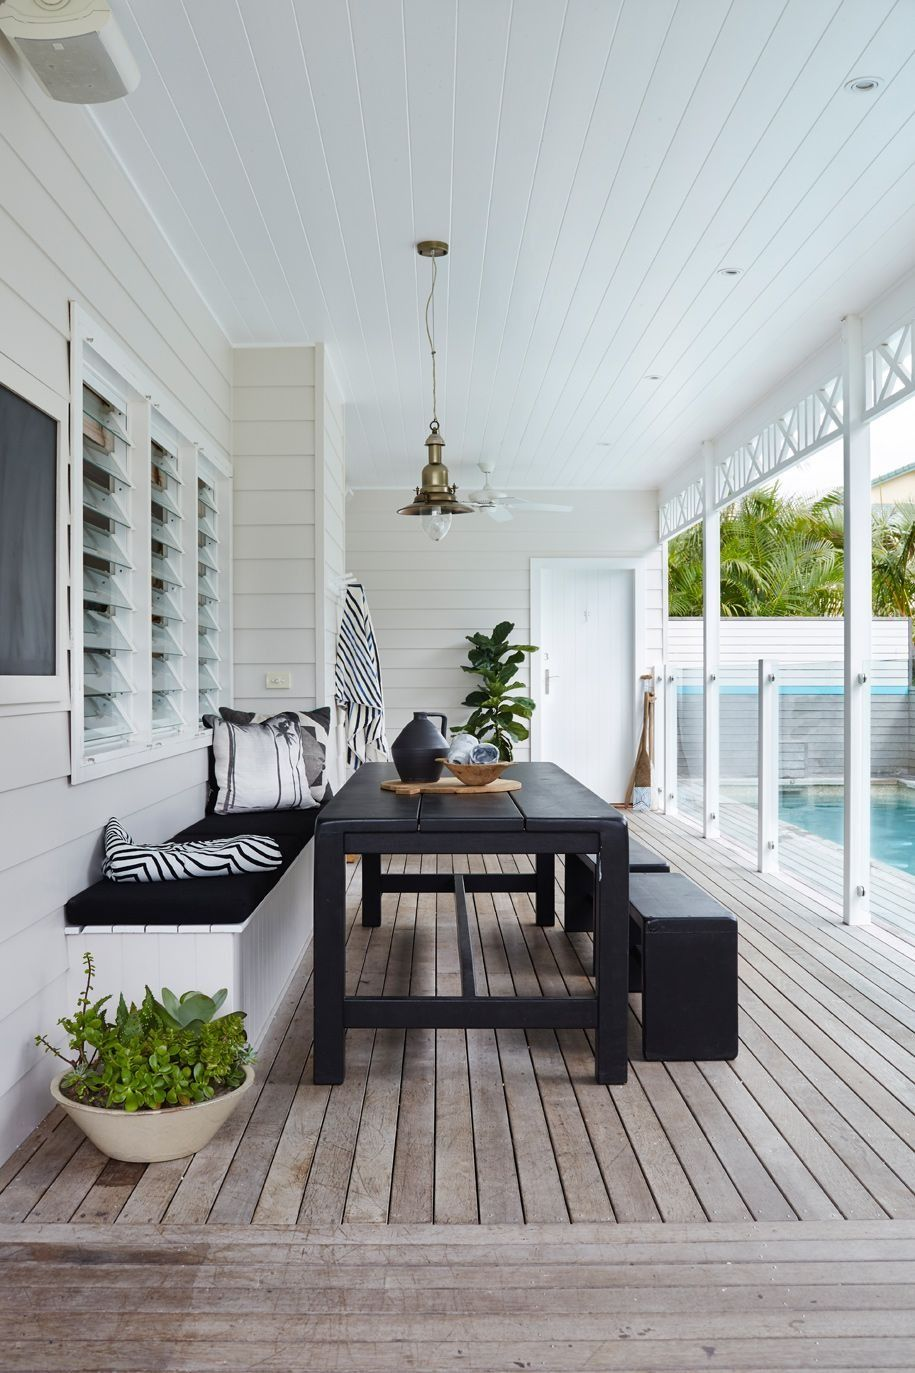 Beautiful Poolside Outdoor Dining Room On The Covered Porch. Pool Table ...